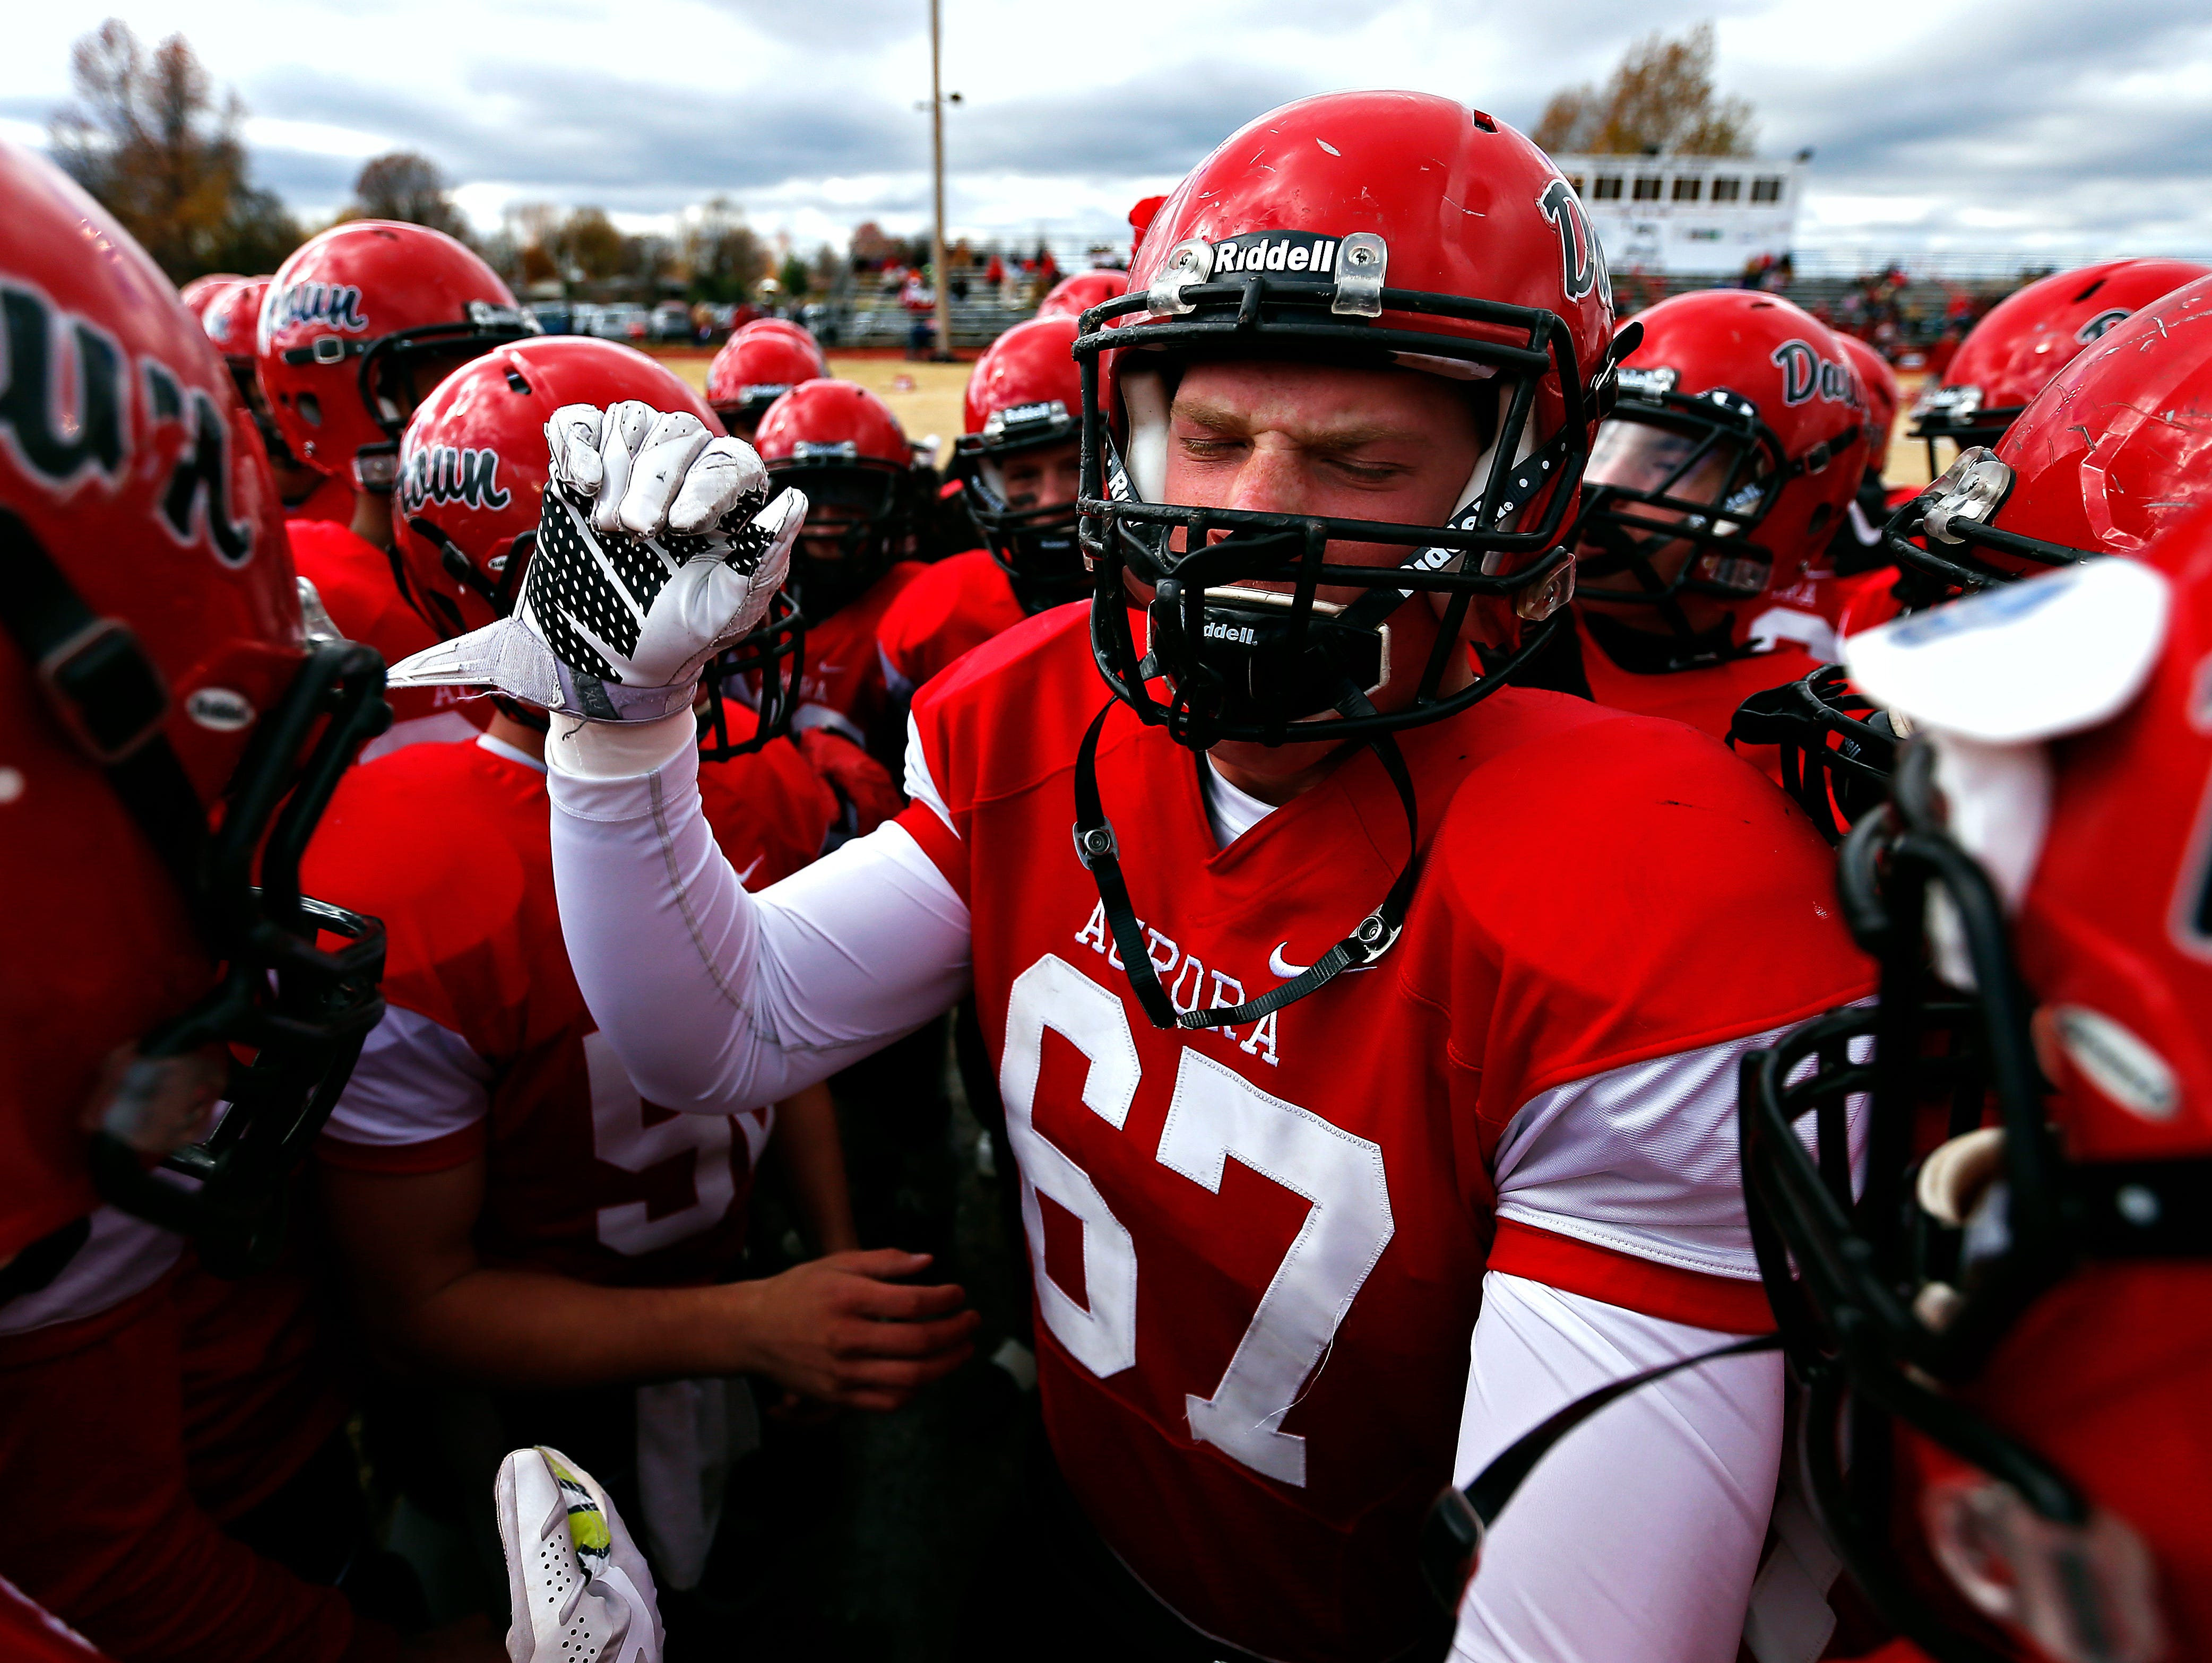 Aurora High School lineman Mason Husmann (67) pumps up his teammates prior to the start of the Houn' Dawgs Class 3 State Semifinal game against Odessa High School at Kelley Field in Aurora, Mo. on Nov. 21, 2015. The Odessa Bulldogs won the game 14-7.